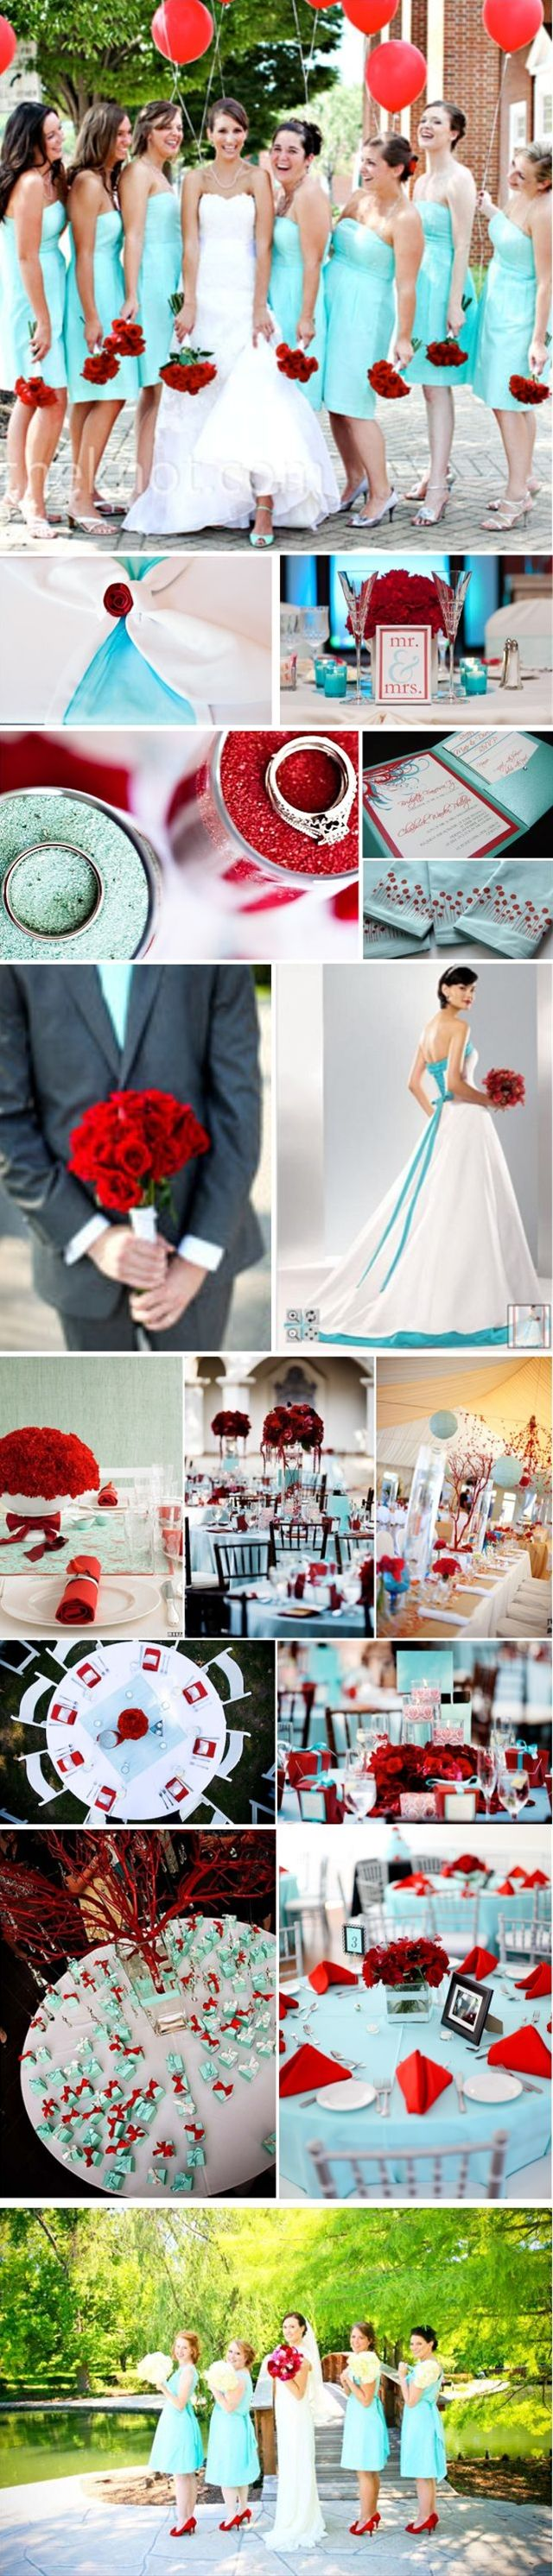 pretty with the red bouquet.  Aqua/red wedding inspiration.... Not crazy about the red- but LOVE the blue